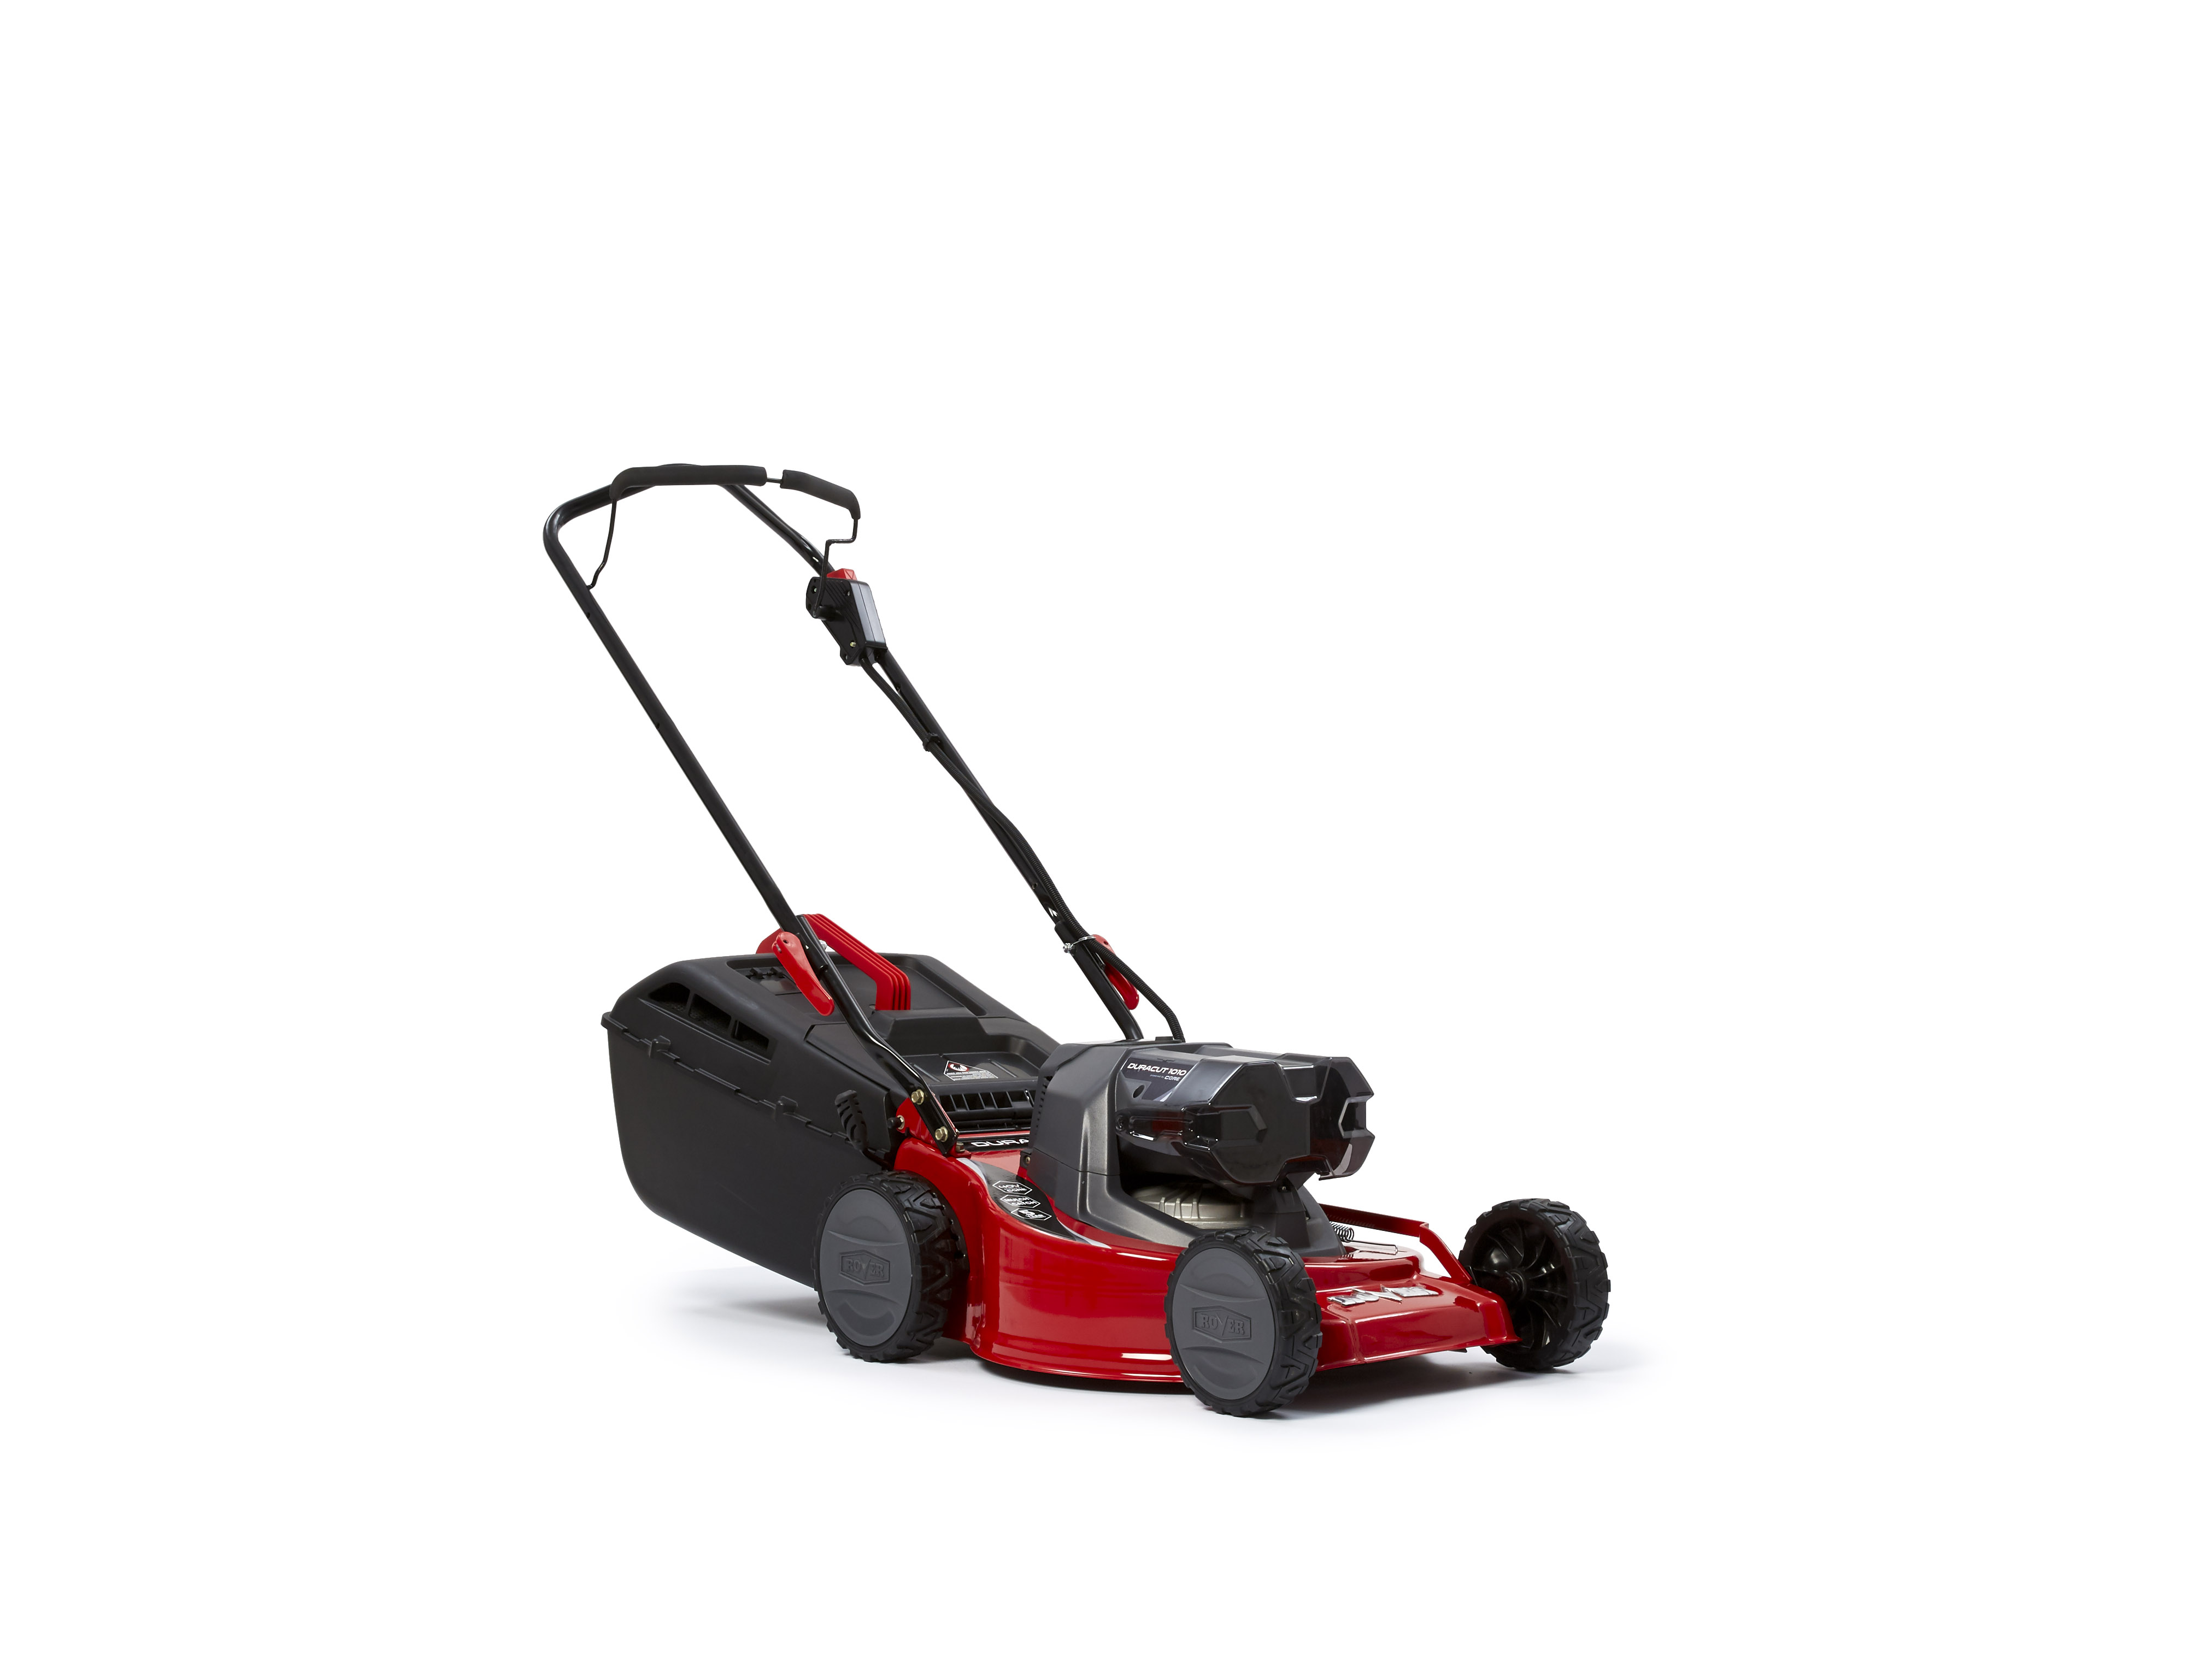 ROVER CORE Durocut Lawnmower